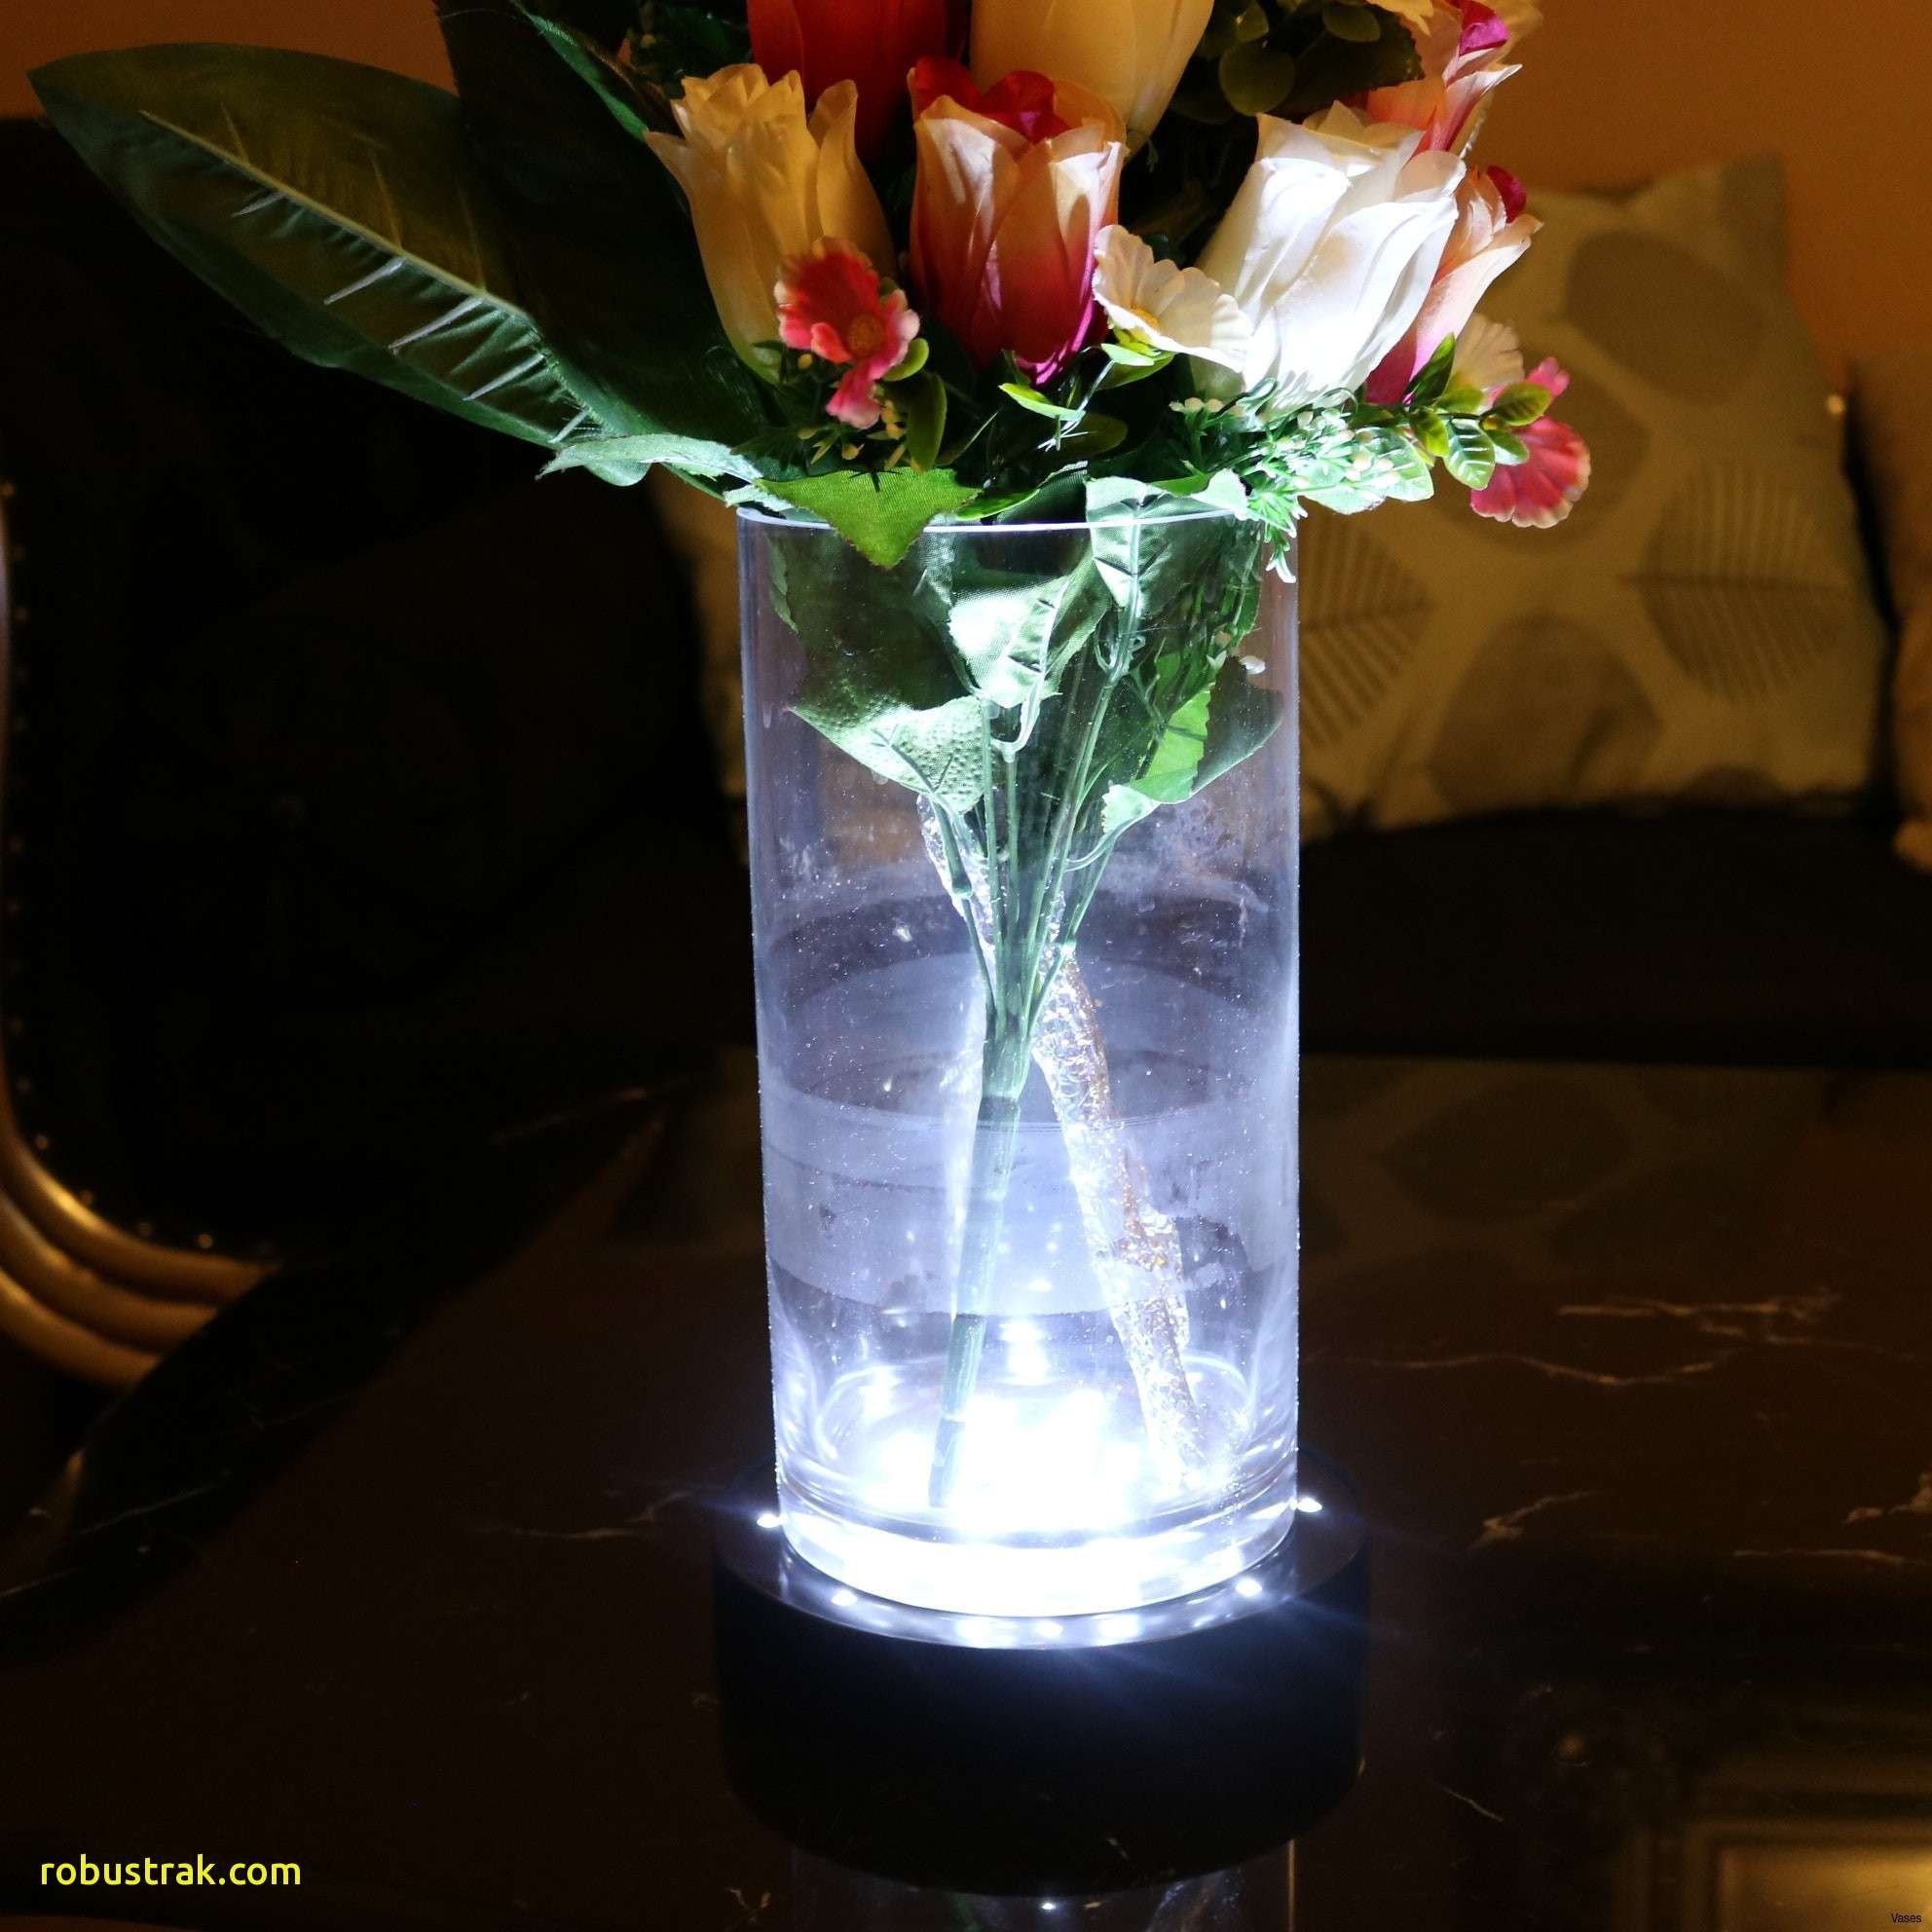 cheap black glass vases of 15 concept glass vase decoration ideas for wedding italib net with vases disposable plastic single cheap flower rose vasei 0d design design ideas wedding bouquet flowers